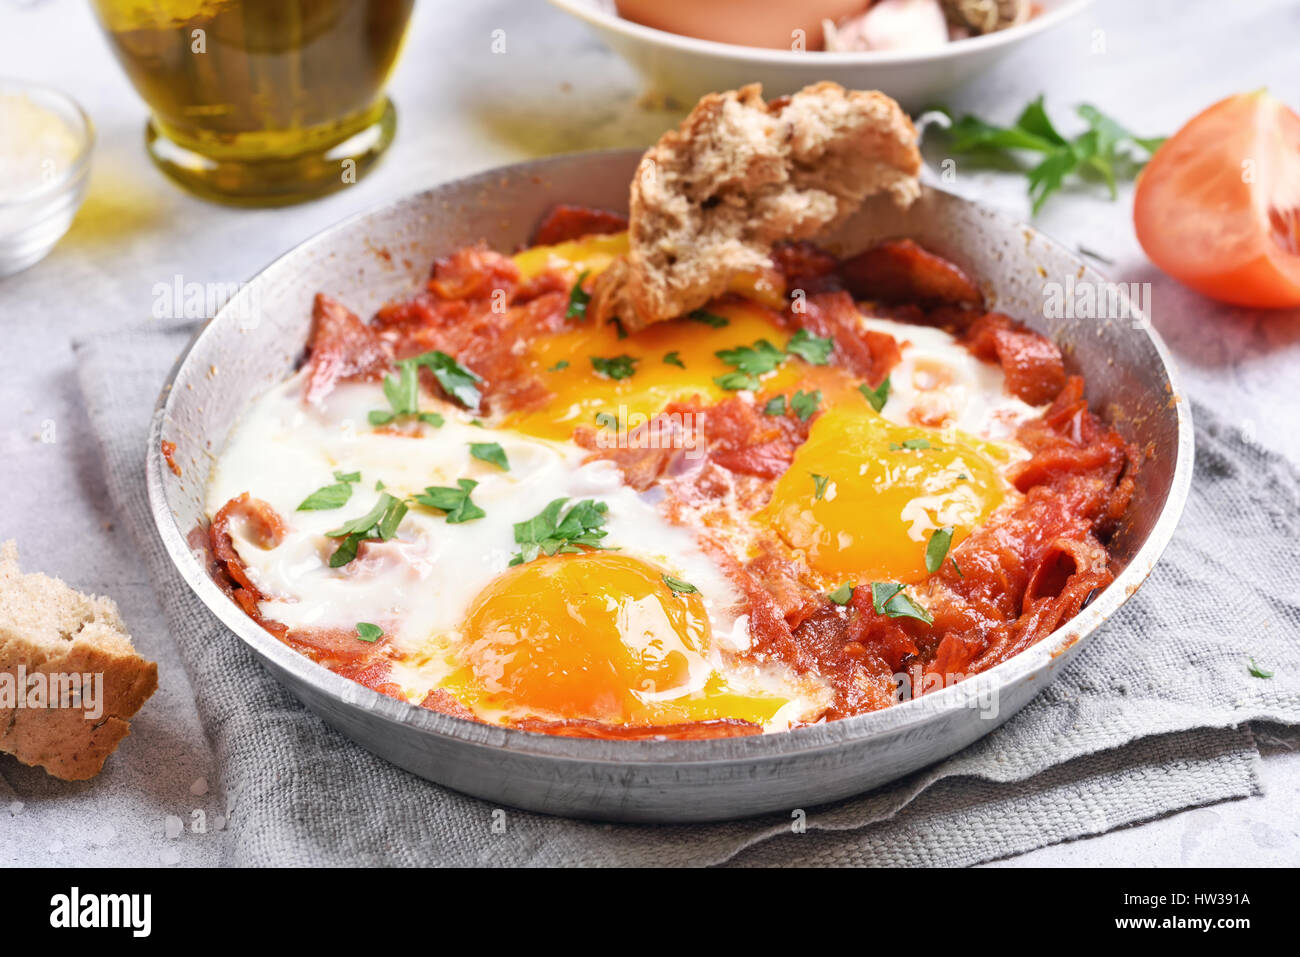 Breakfast with fried eggs and bacon in frying pan, close up view - Stock Image